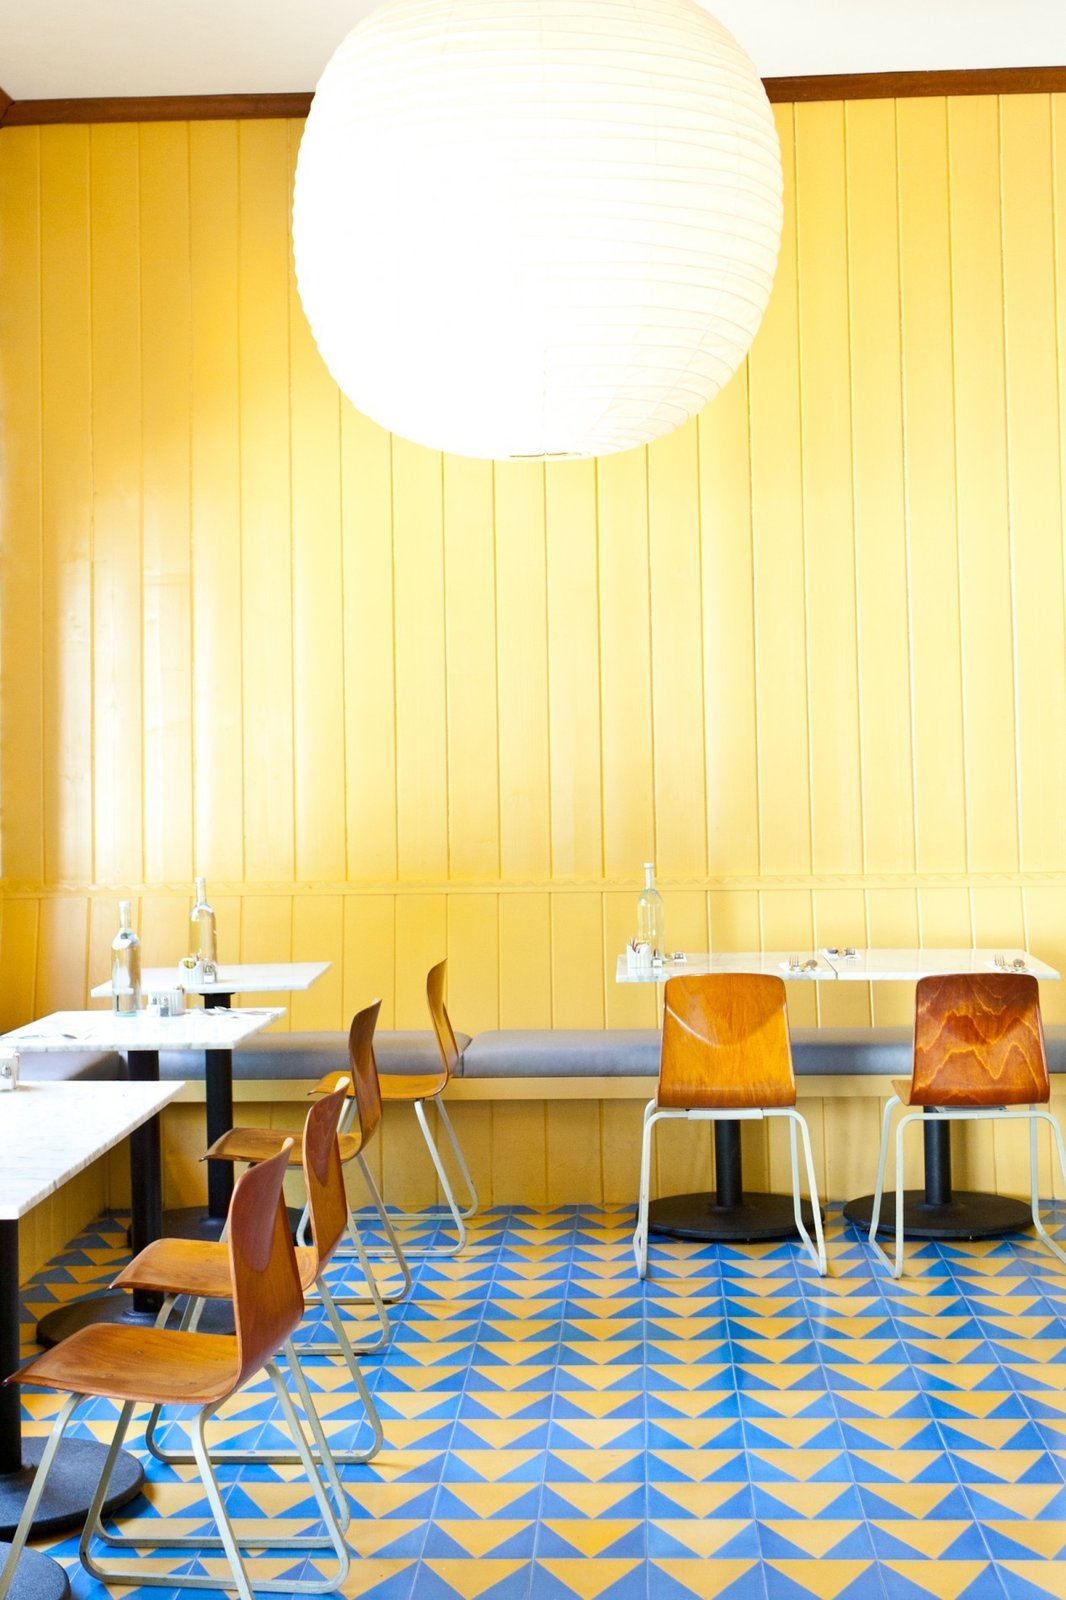 Beachwood Café in Hollywood by Bestor Architecture. Courtesy of Bestor Architecture. Hospitality Favorites by Allie Weiss